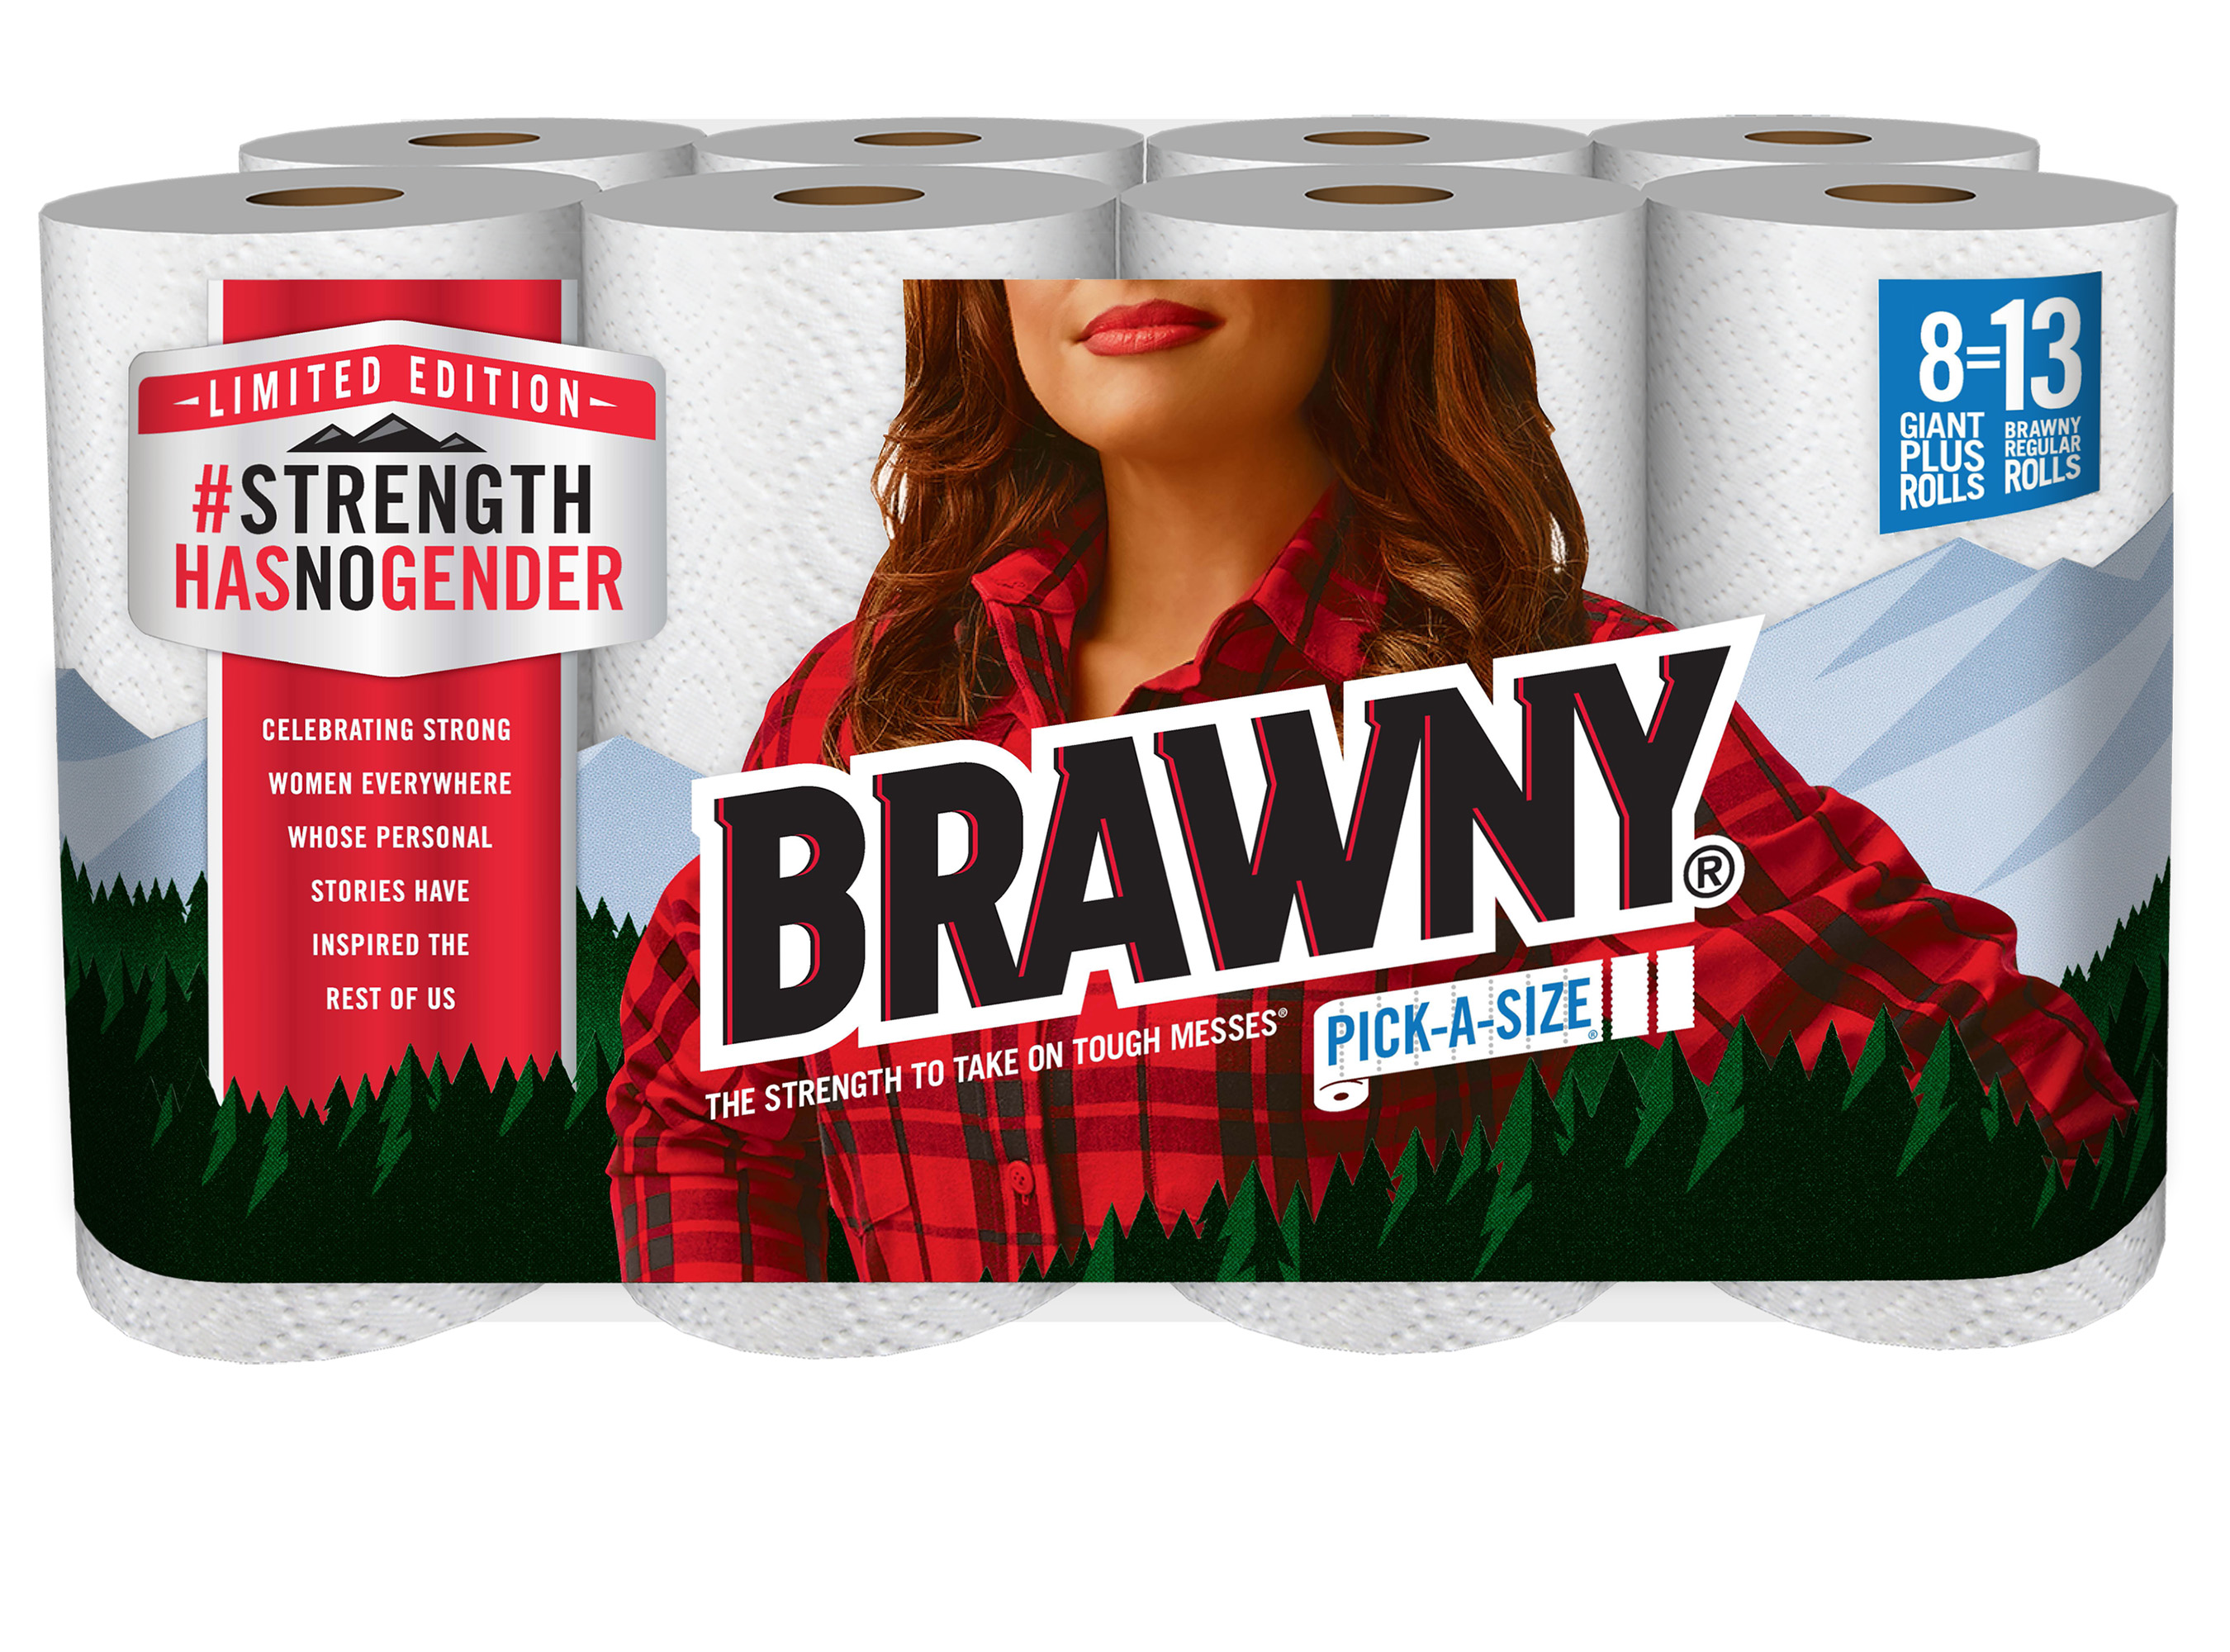 A limited edition package featuring a woman in place of the iconic Brawny® man for the first time ever. The commemorative package is available at Walmart during Women's History Month.